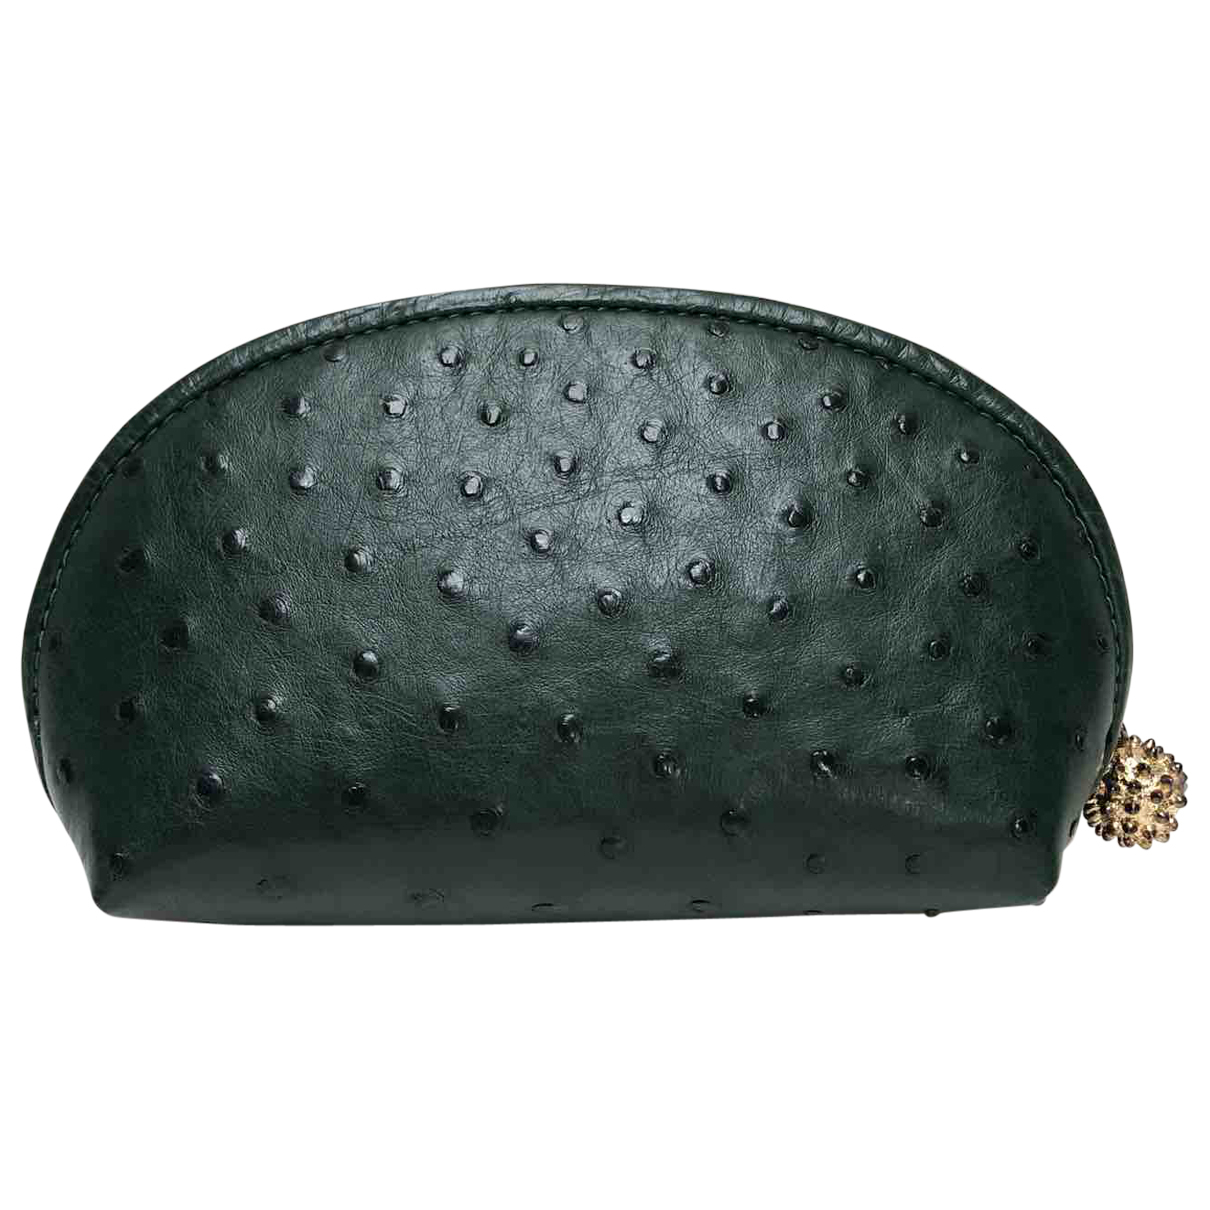 Ethan K \N Green Ostrich Purses, wallet & cases for Women \N